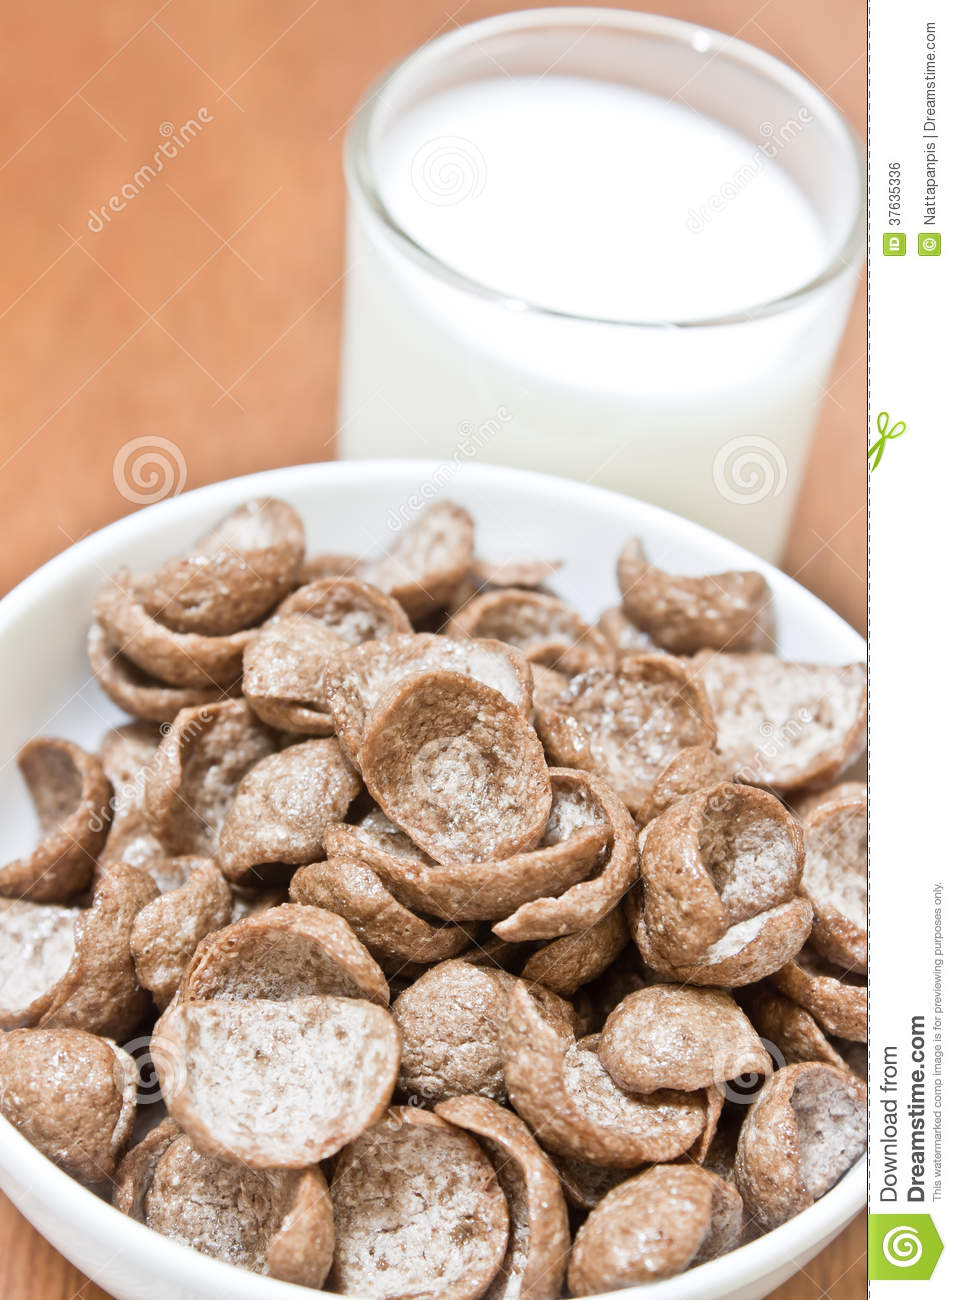 Milk And Cereal Royalty Free Stock Image - Image: 37635336